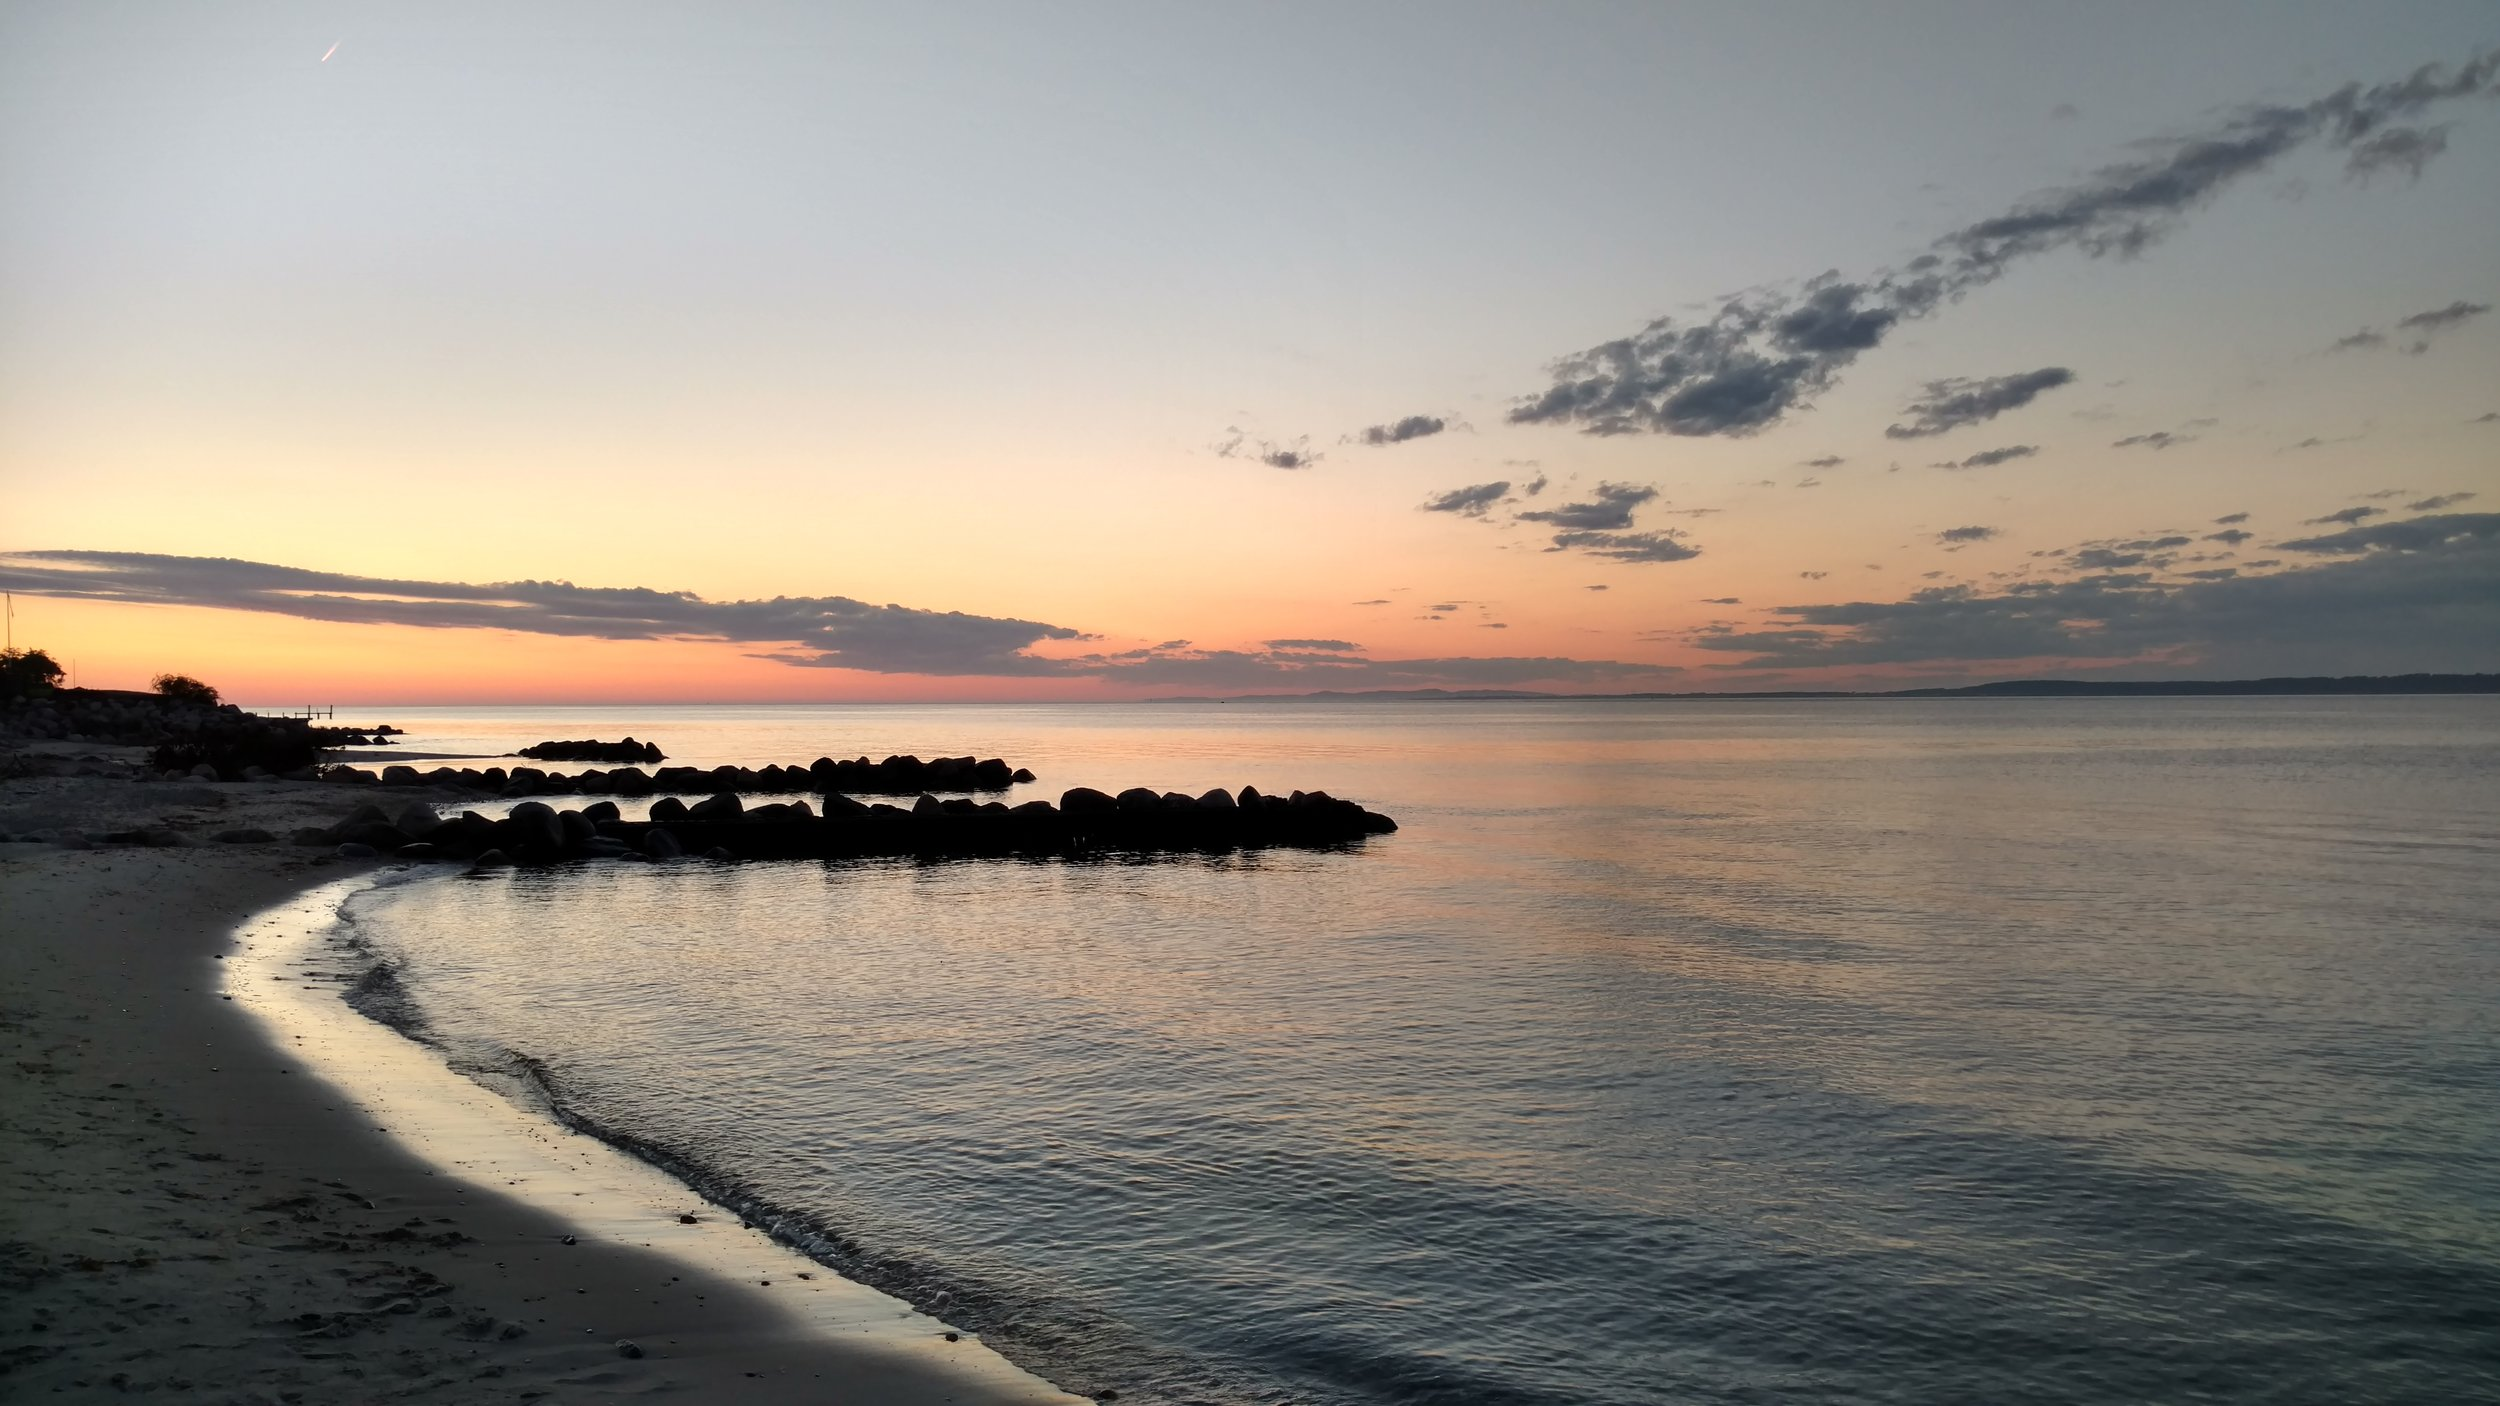 Sunsets in Helsingor on the northern coast of Denmark